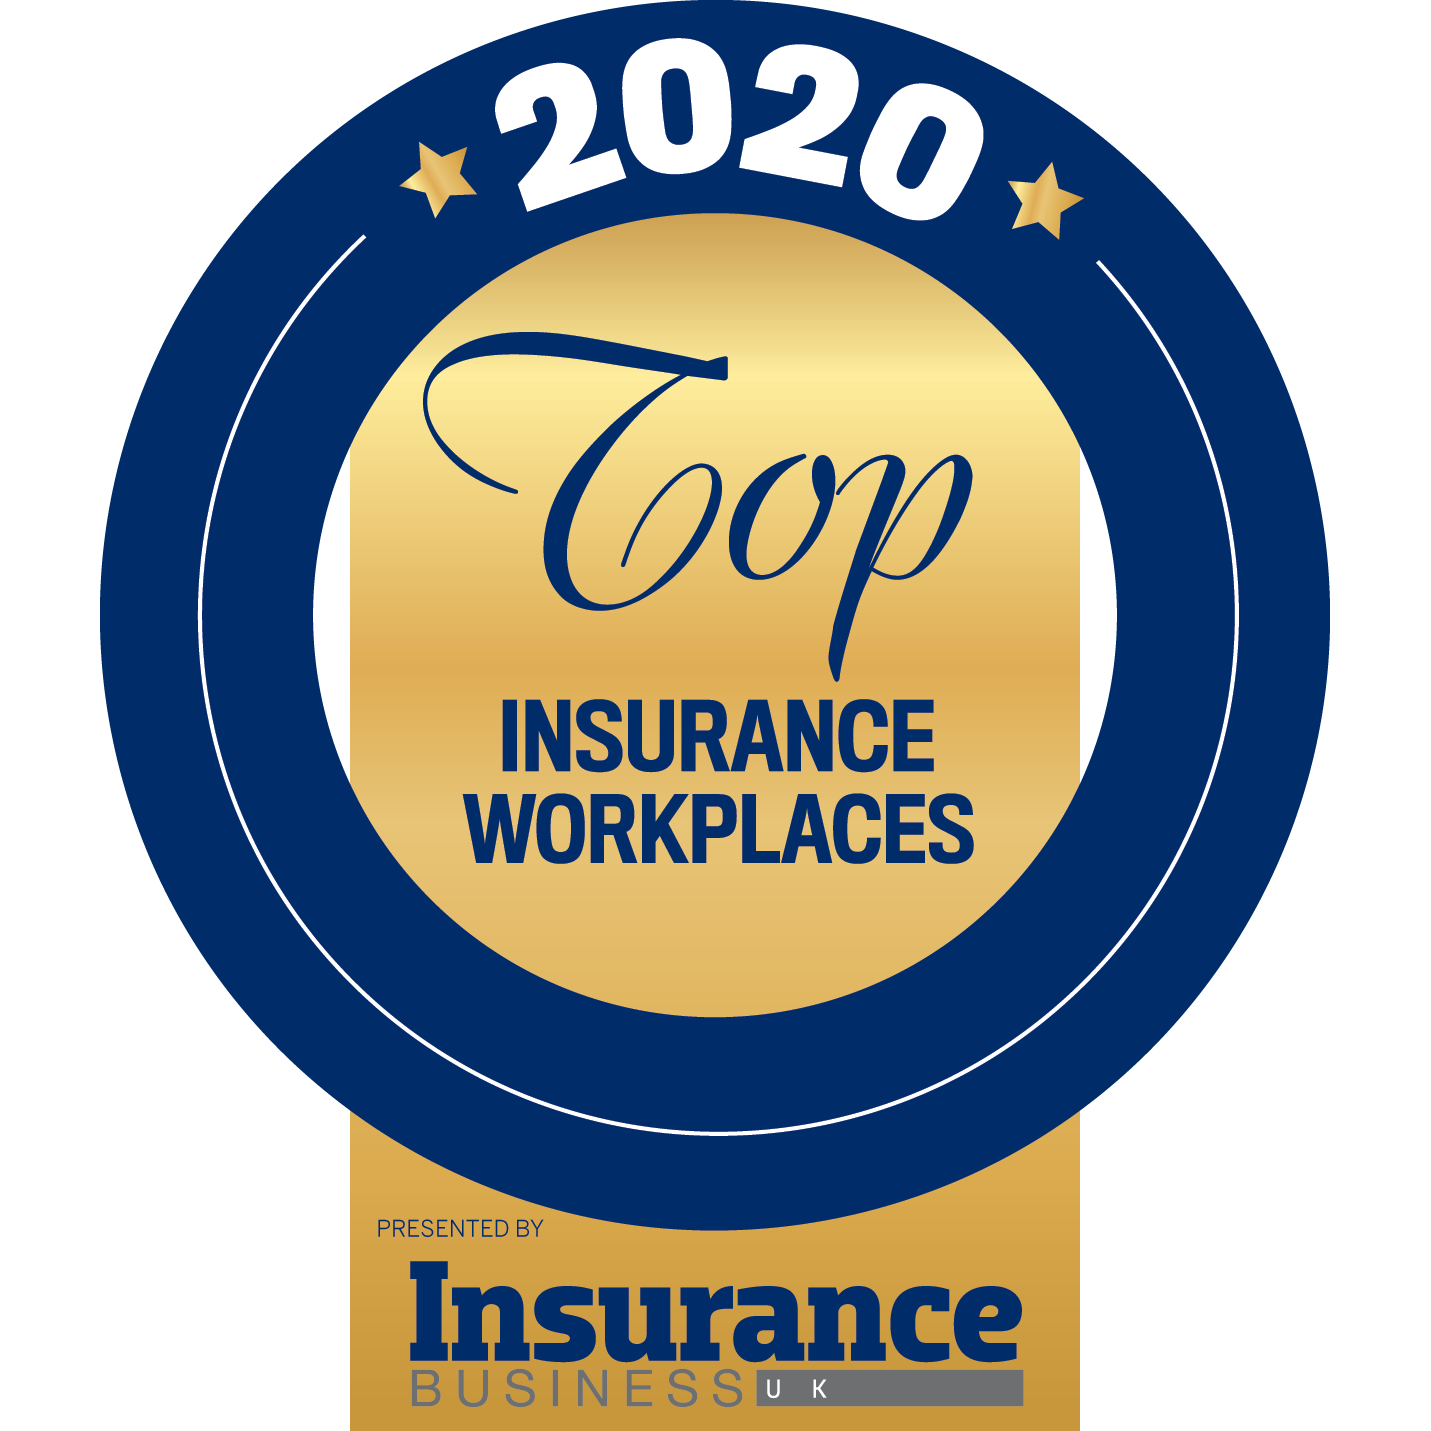 Insurance Business UK - Top Insurance Wrokplaces 2020